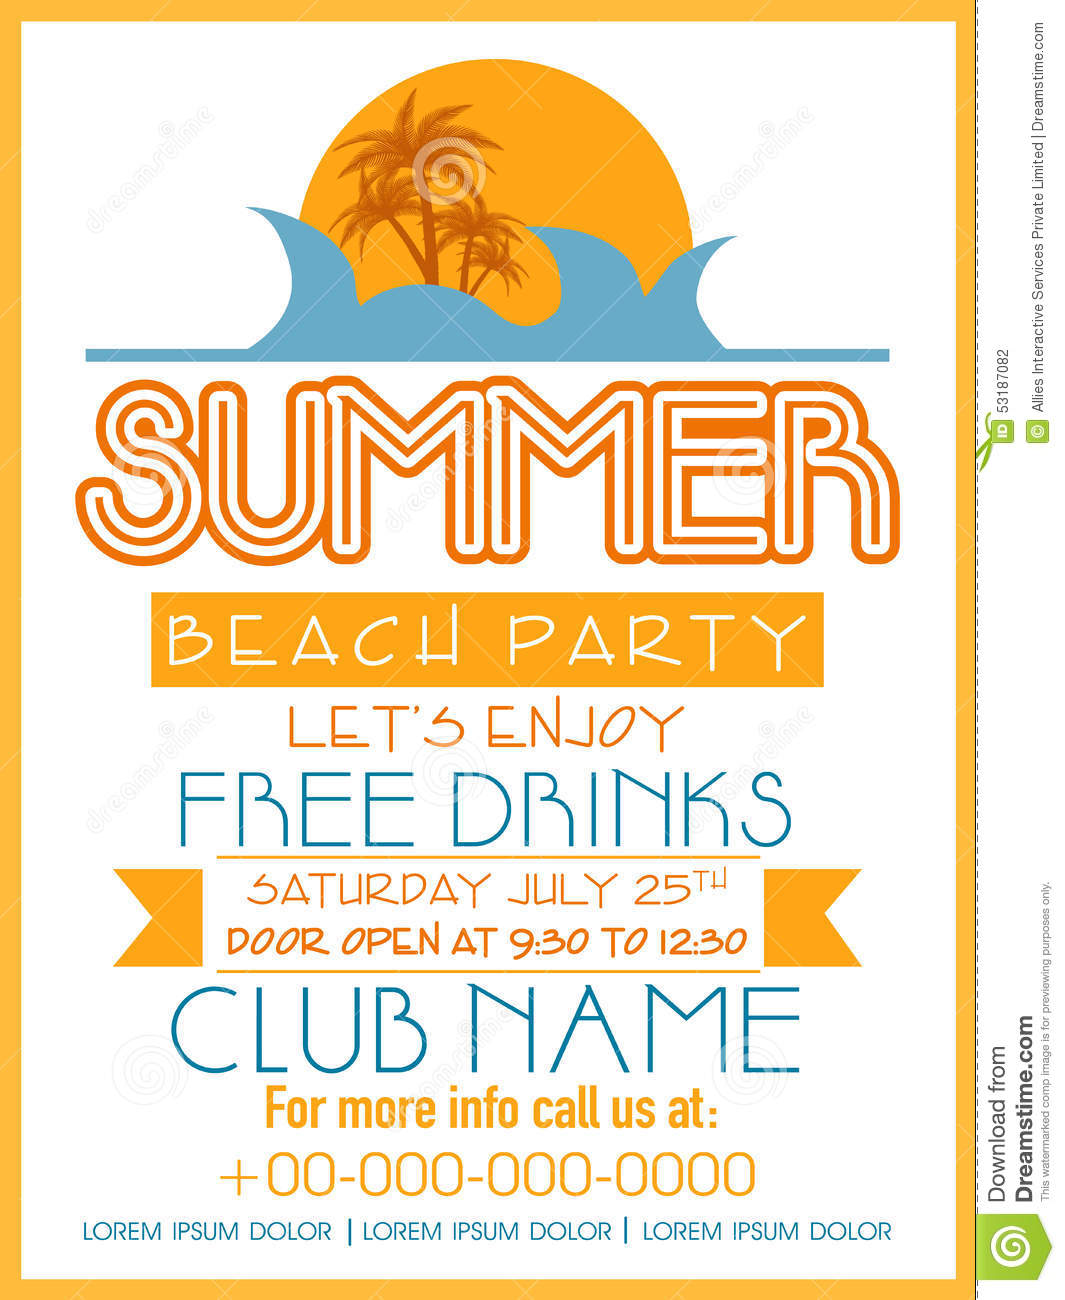 Invitation Card Design For Summer Beach Party. Stock ...